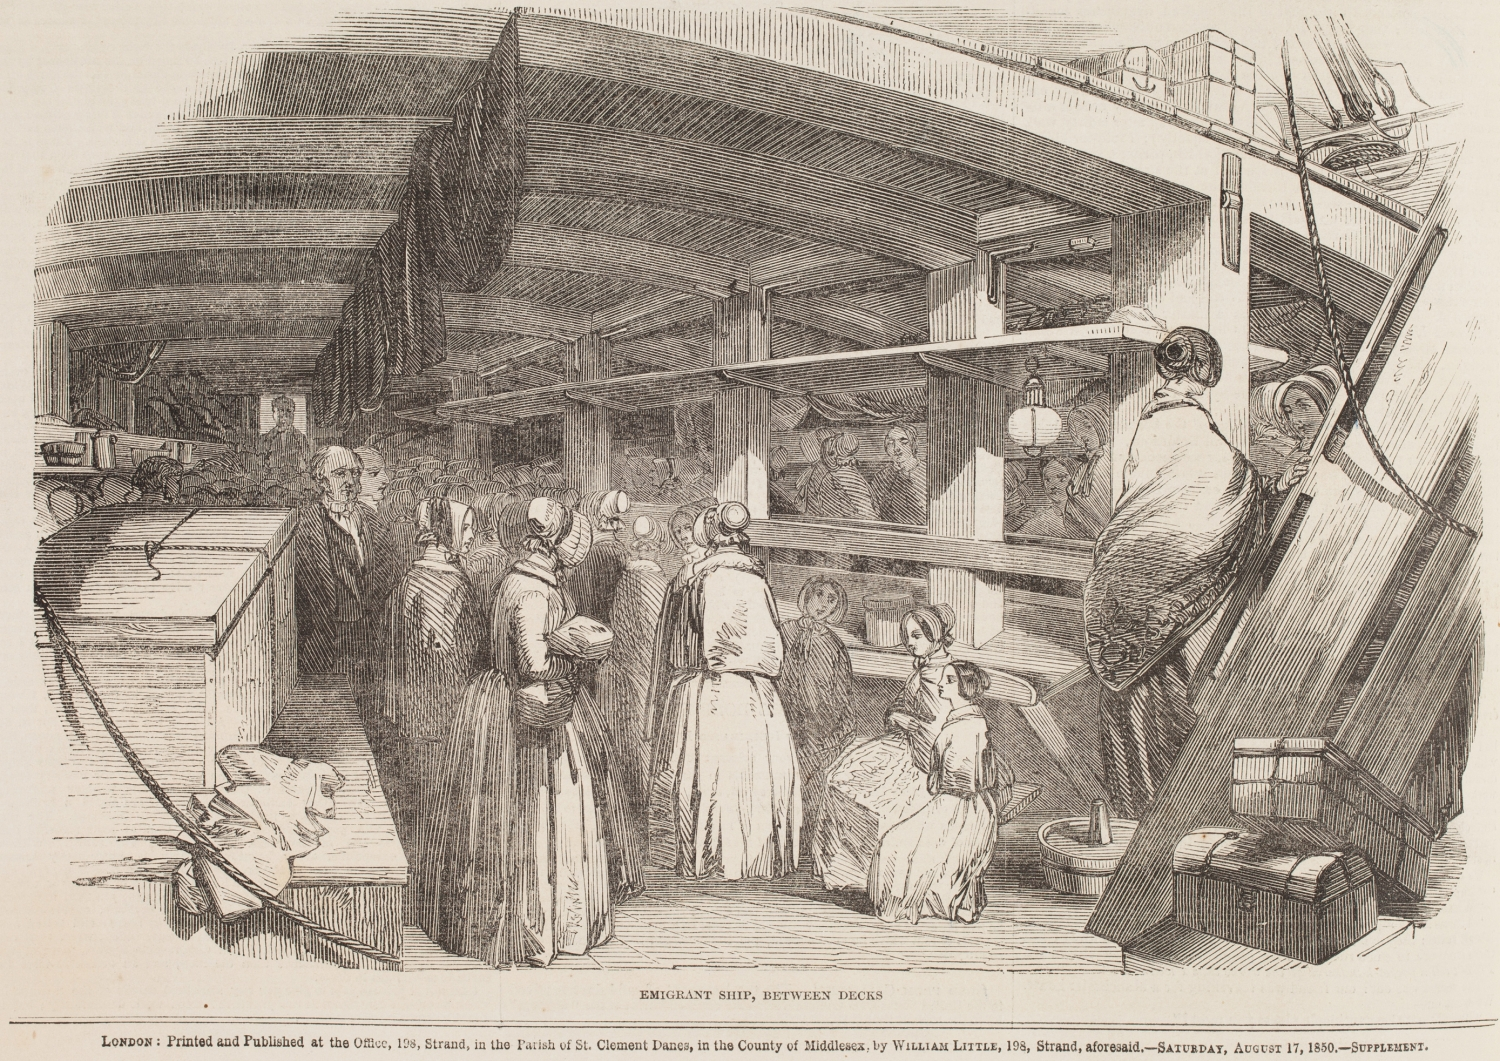 Engraving of interior of wooden ship with women.